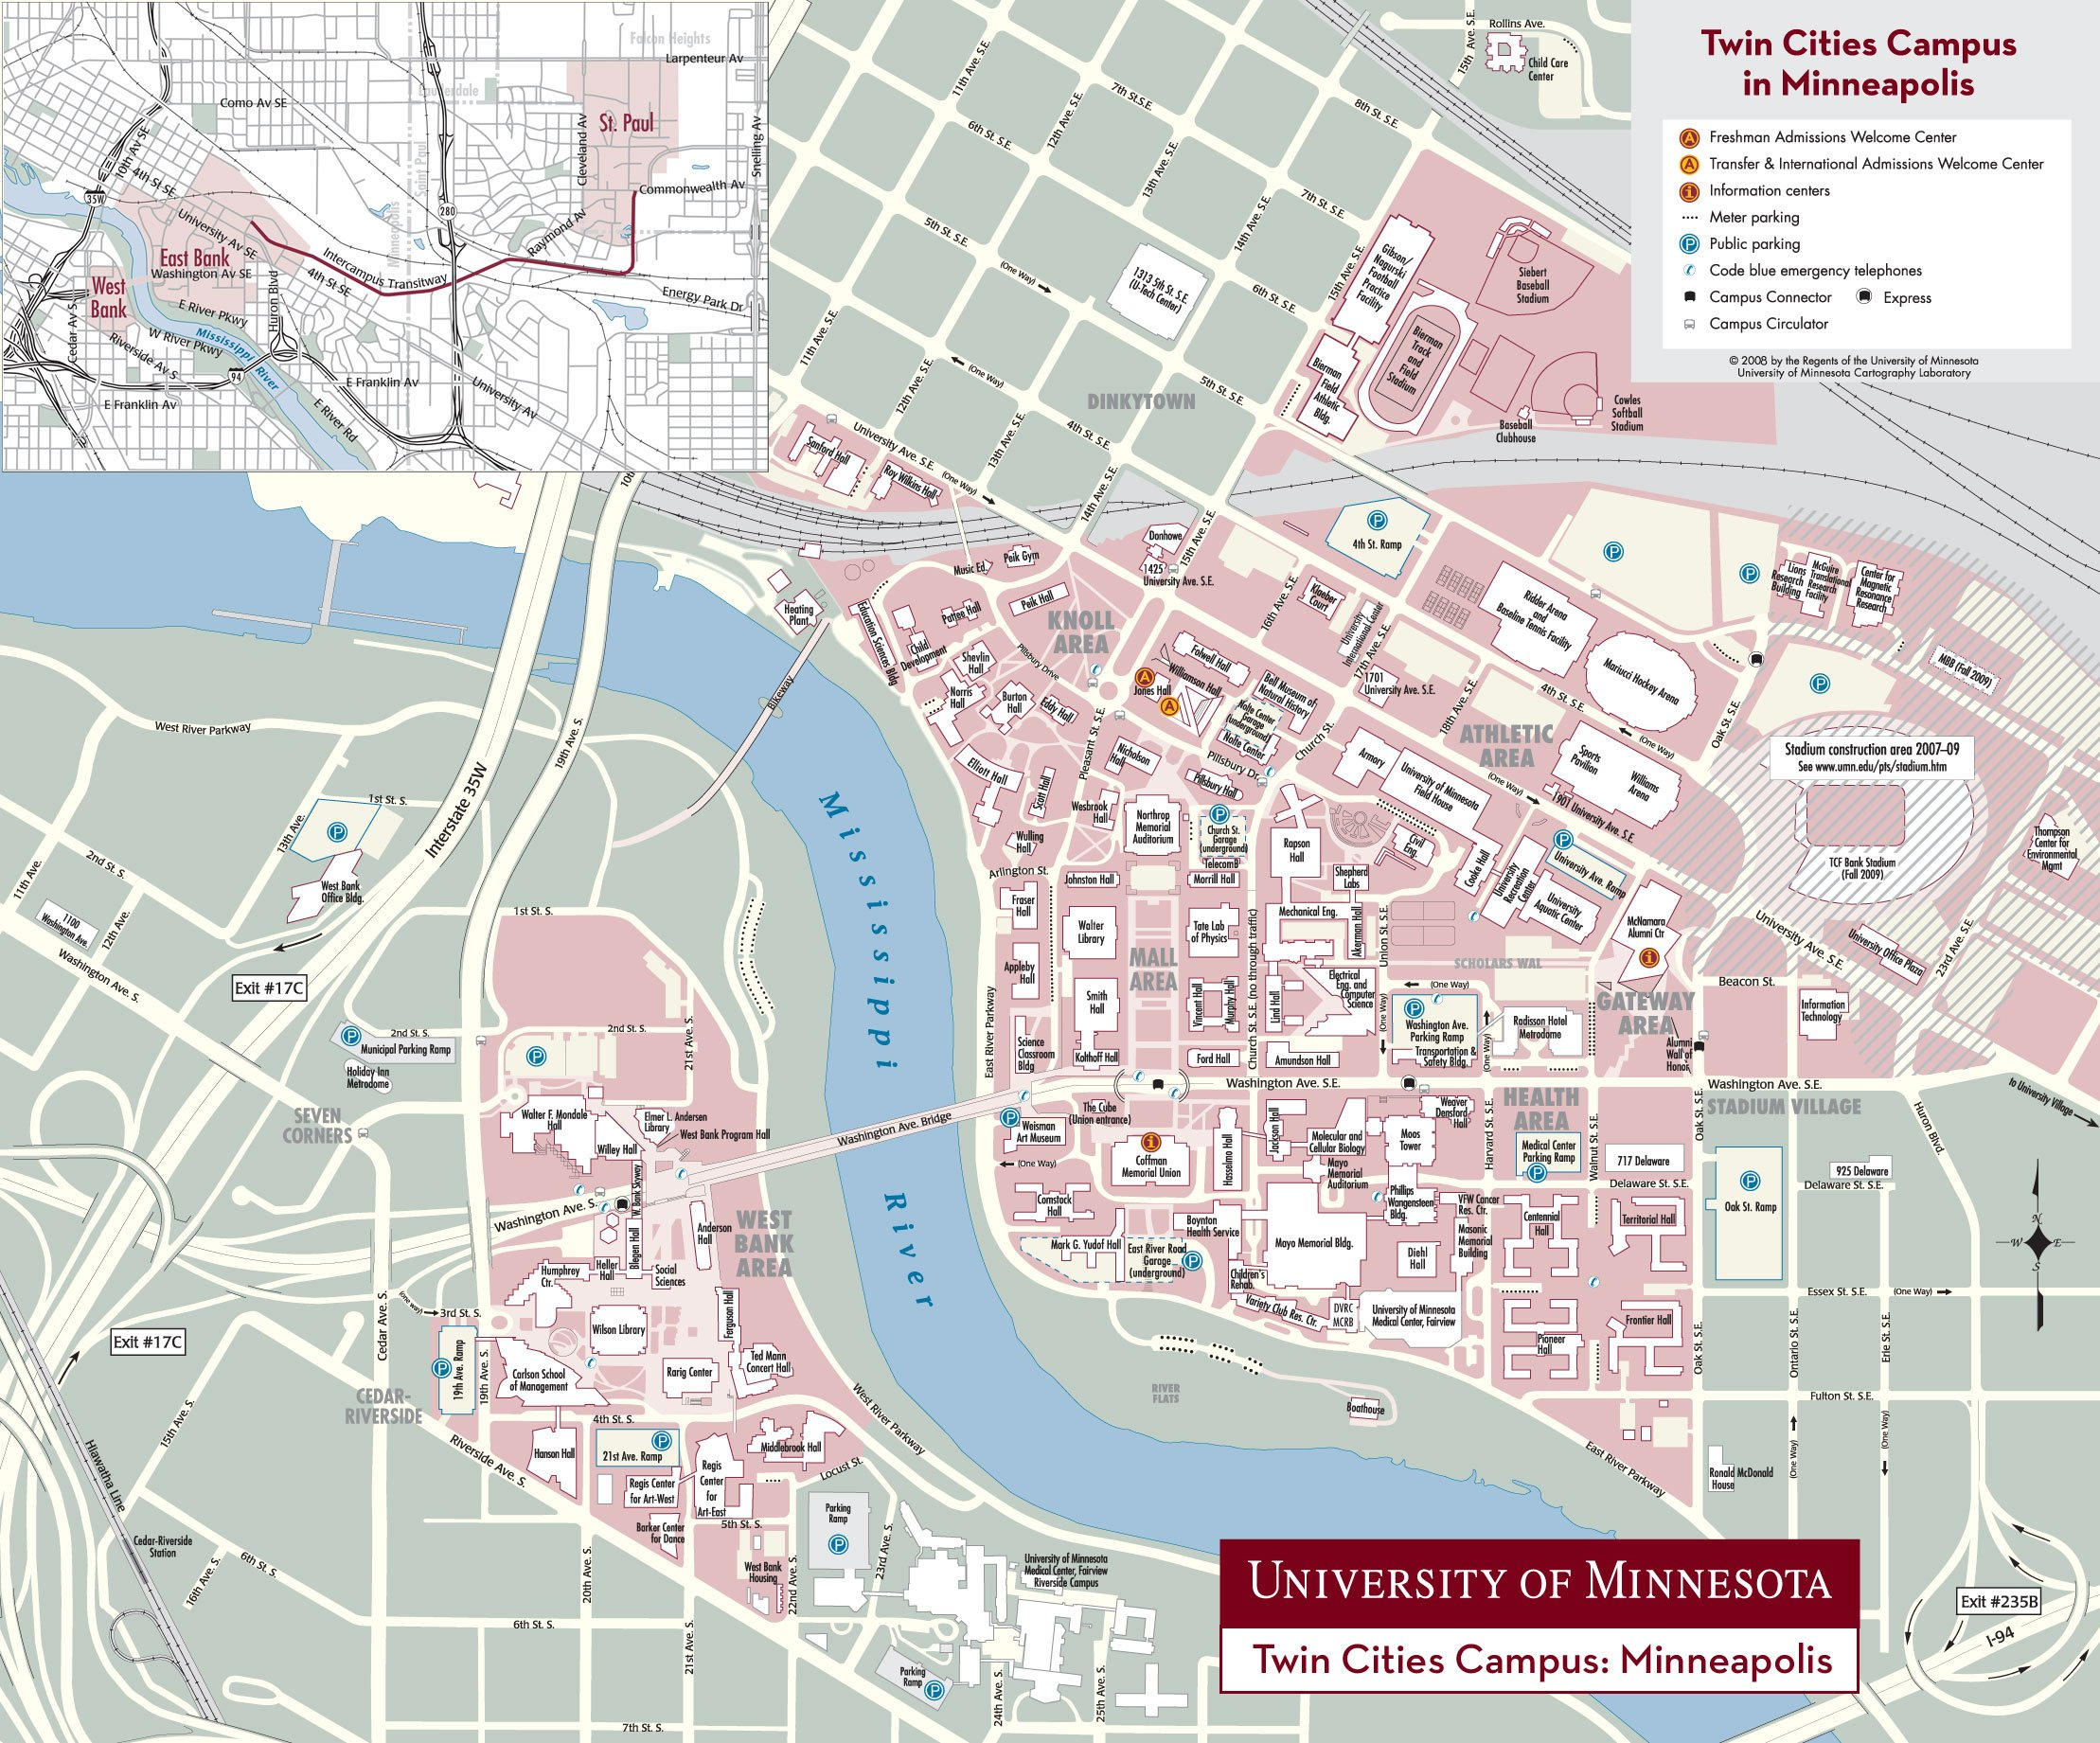 University Of Minnesota Campus Map | Smeka